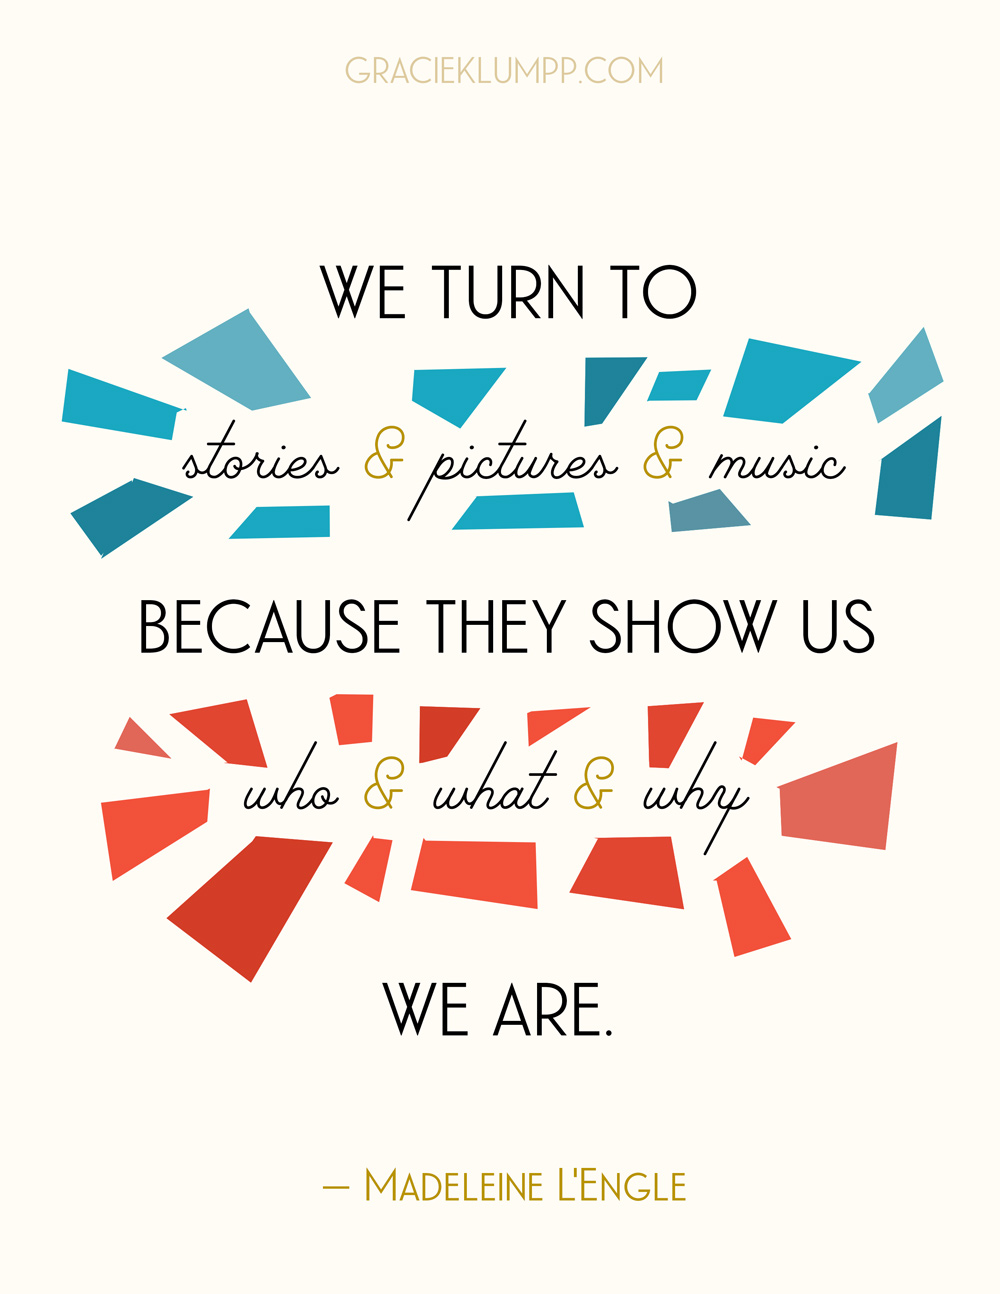 We Turn To Stories, Pictures and Music...